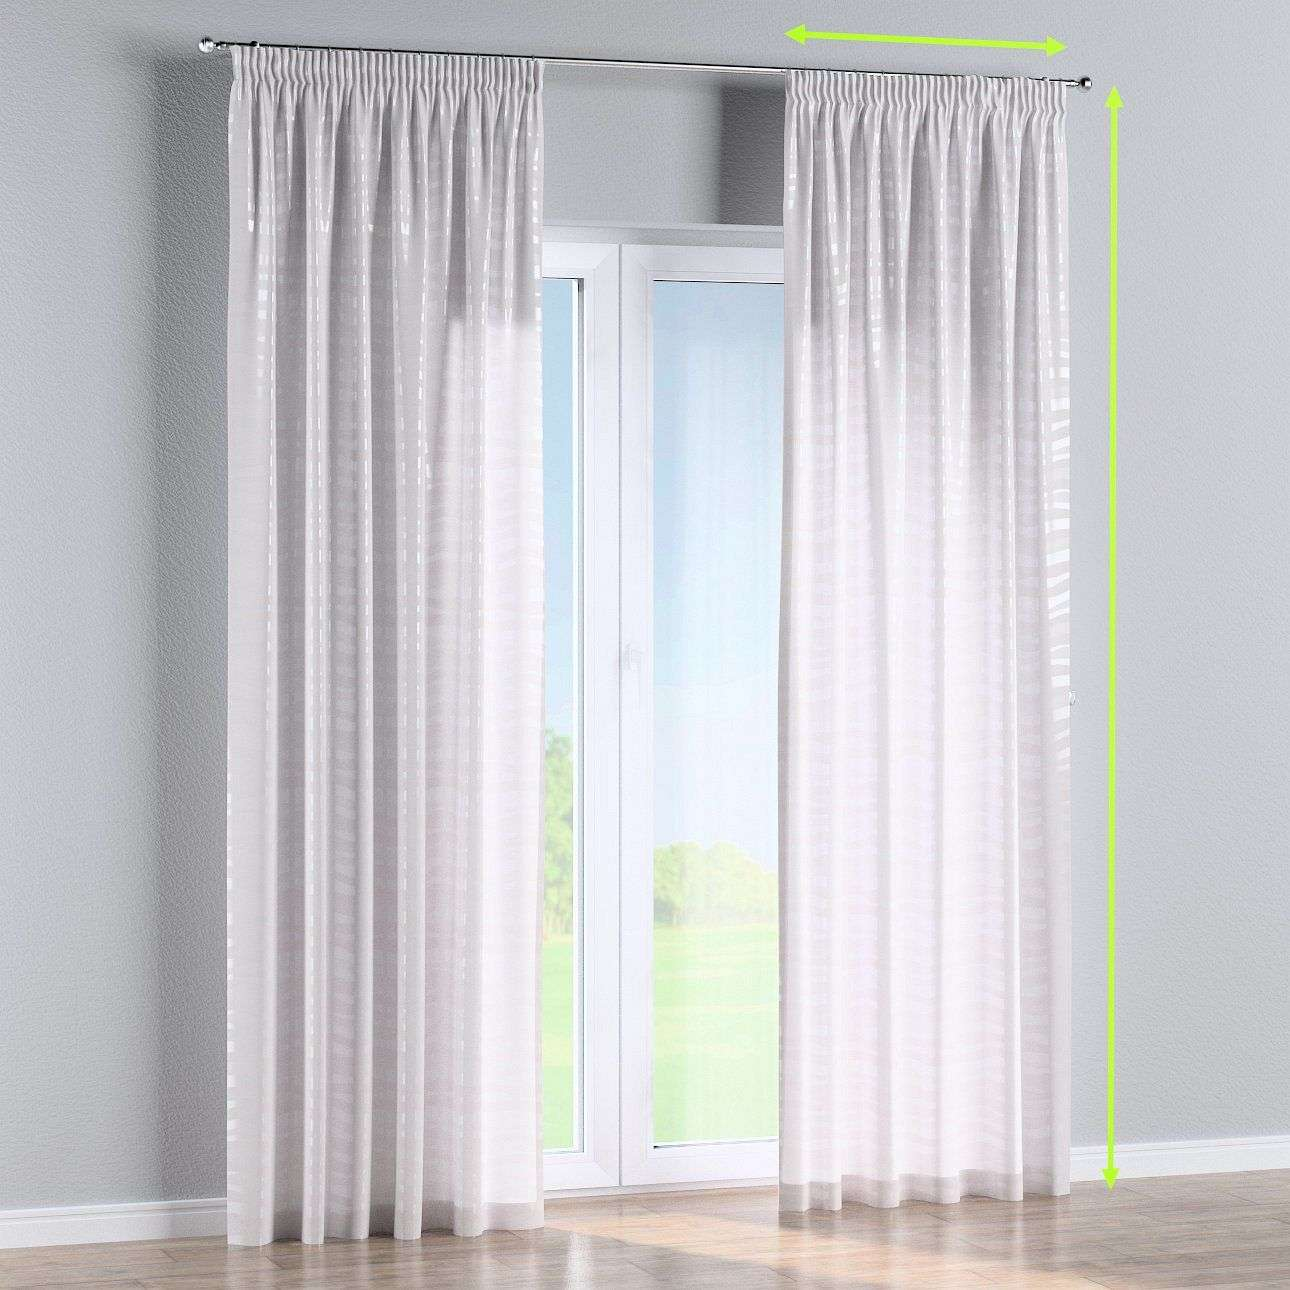 Pencil pleat lined curtains in collection Damasco, fabric: 141-87